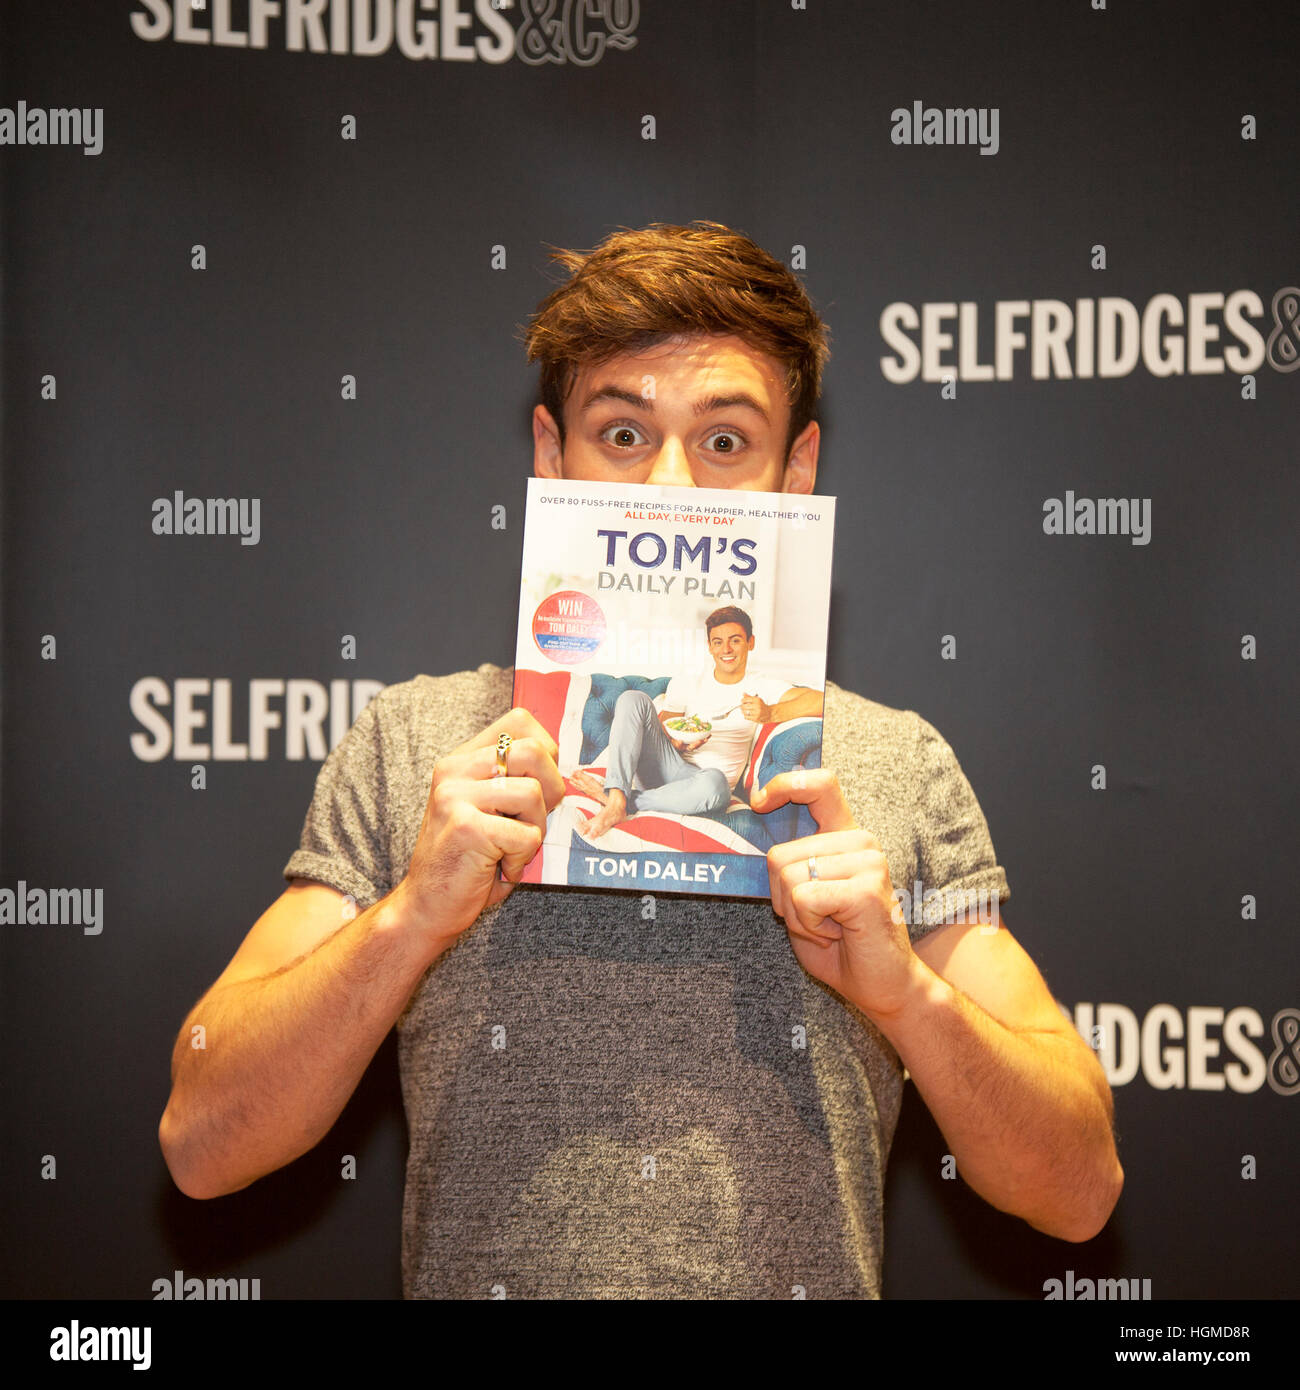 Tom Daley Book Signing, Trafford, Manchester, UK: 10th Jan 2017.  Olympic athlete & TV Presenter Tom Daley poses - Stock Image